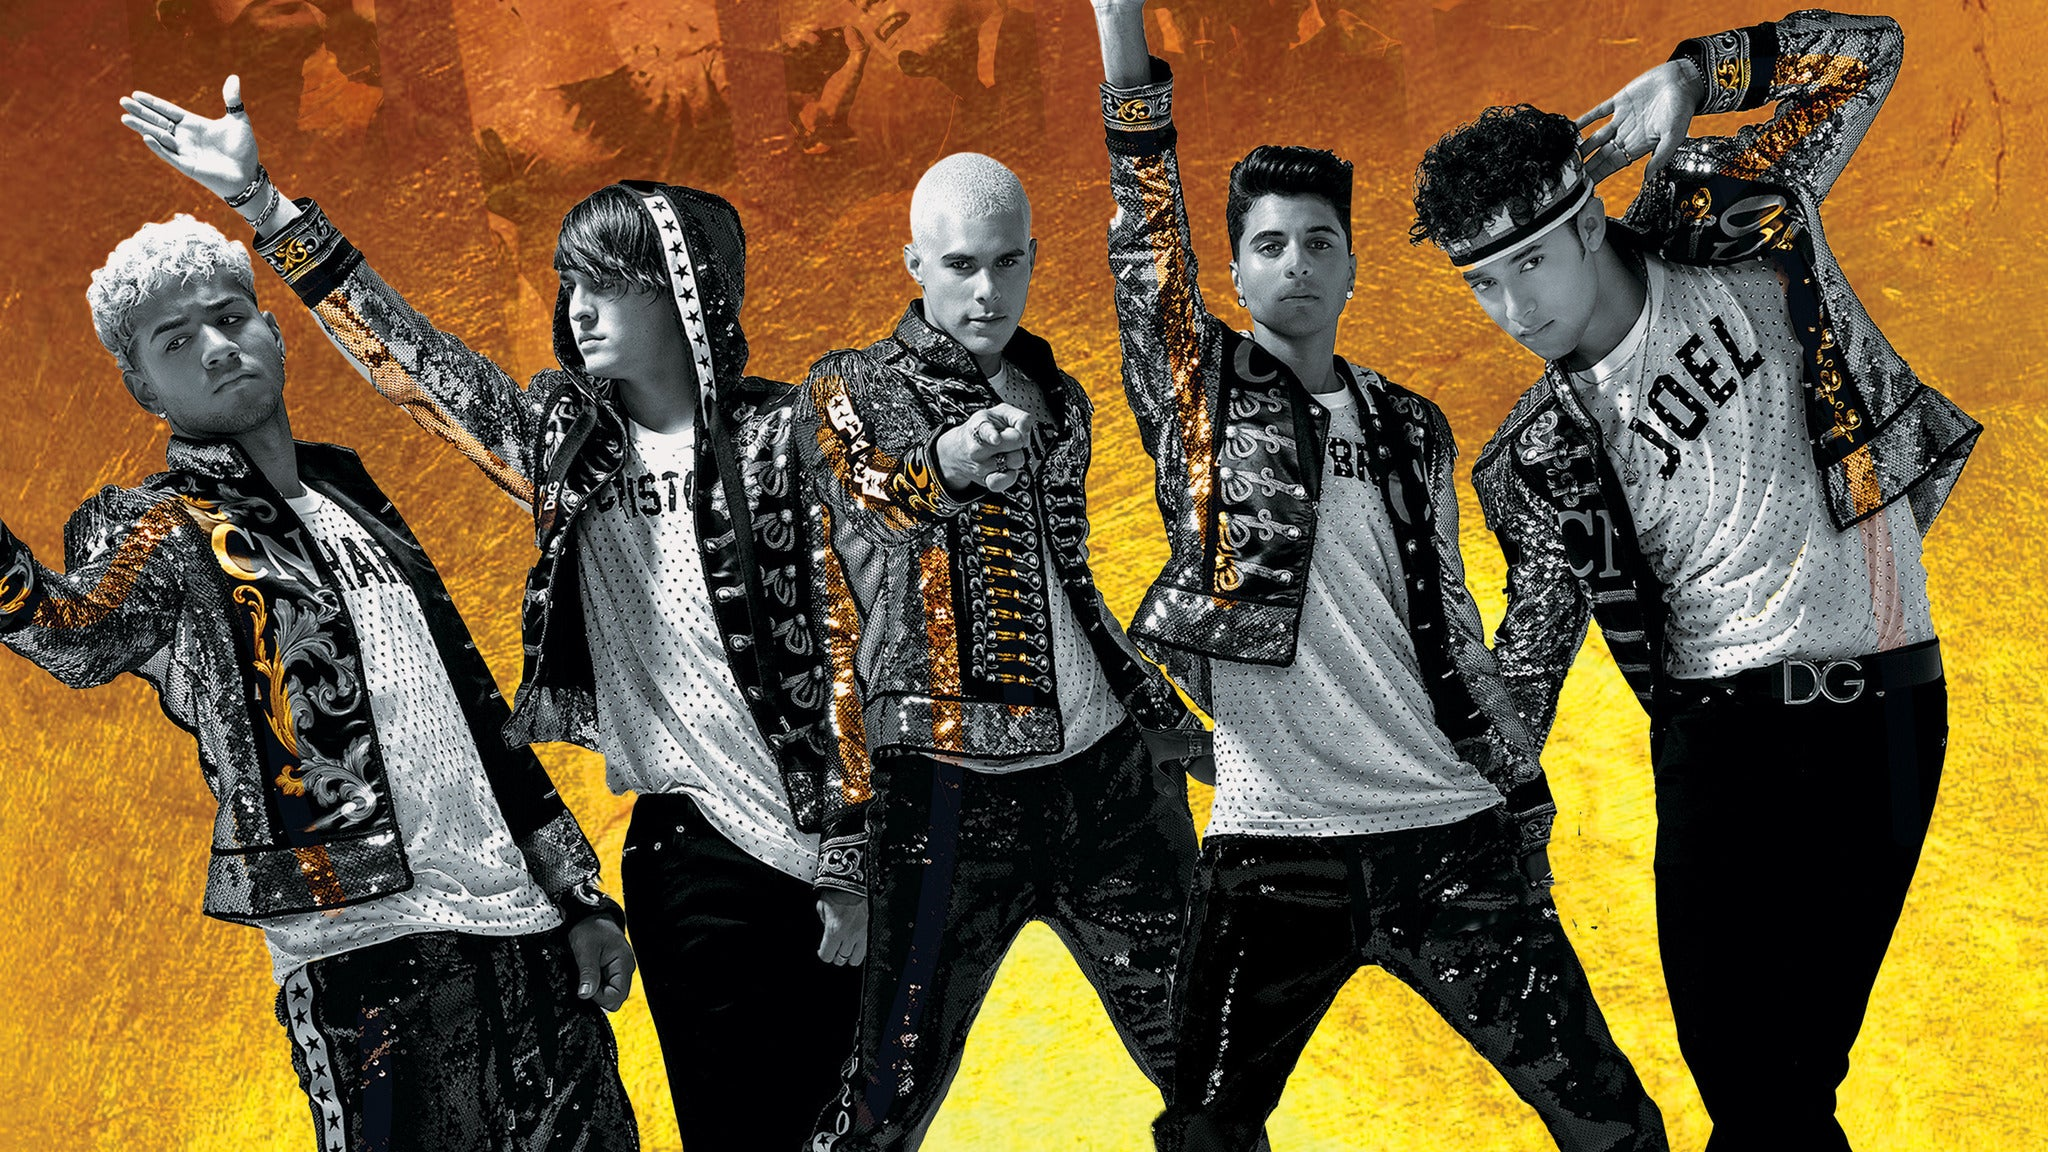 CNCO World Tour 2019 at AmericanAirlines Arena